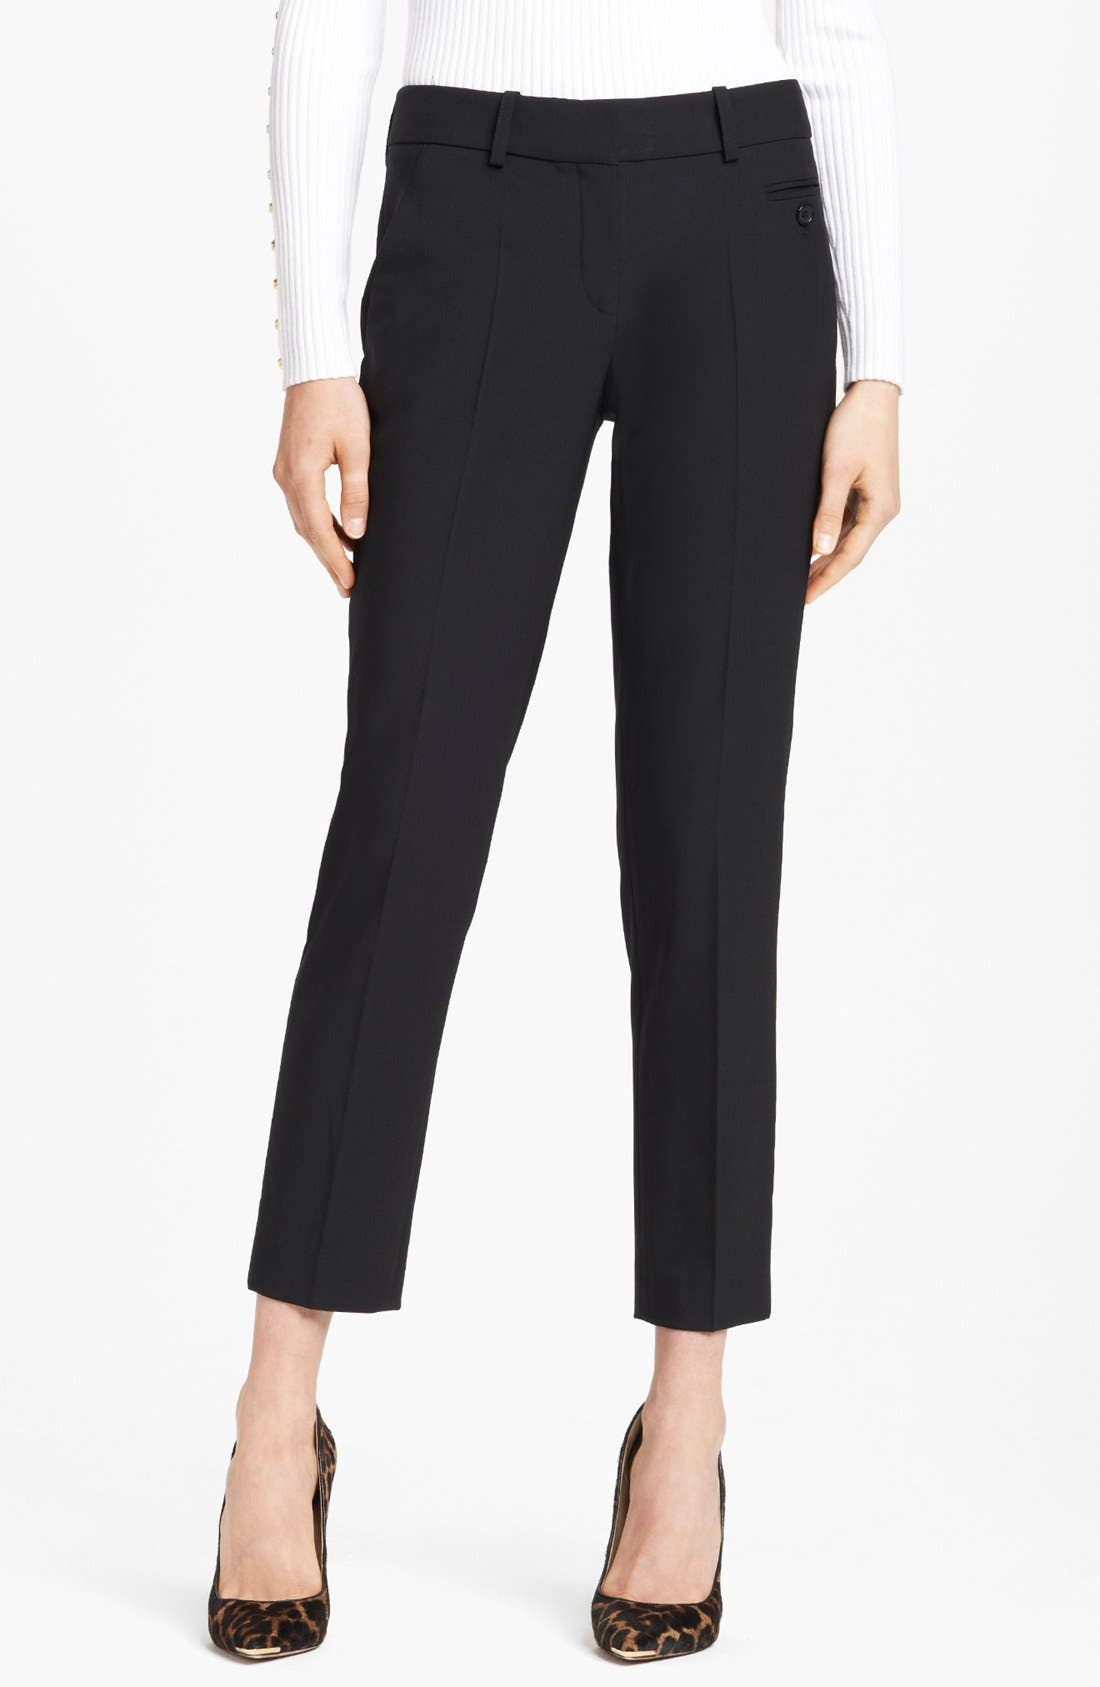 Alternate Image 1 Selected - Michael Kors 'Samantha' Skinny Stretch Wool Pants